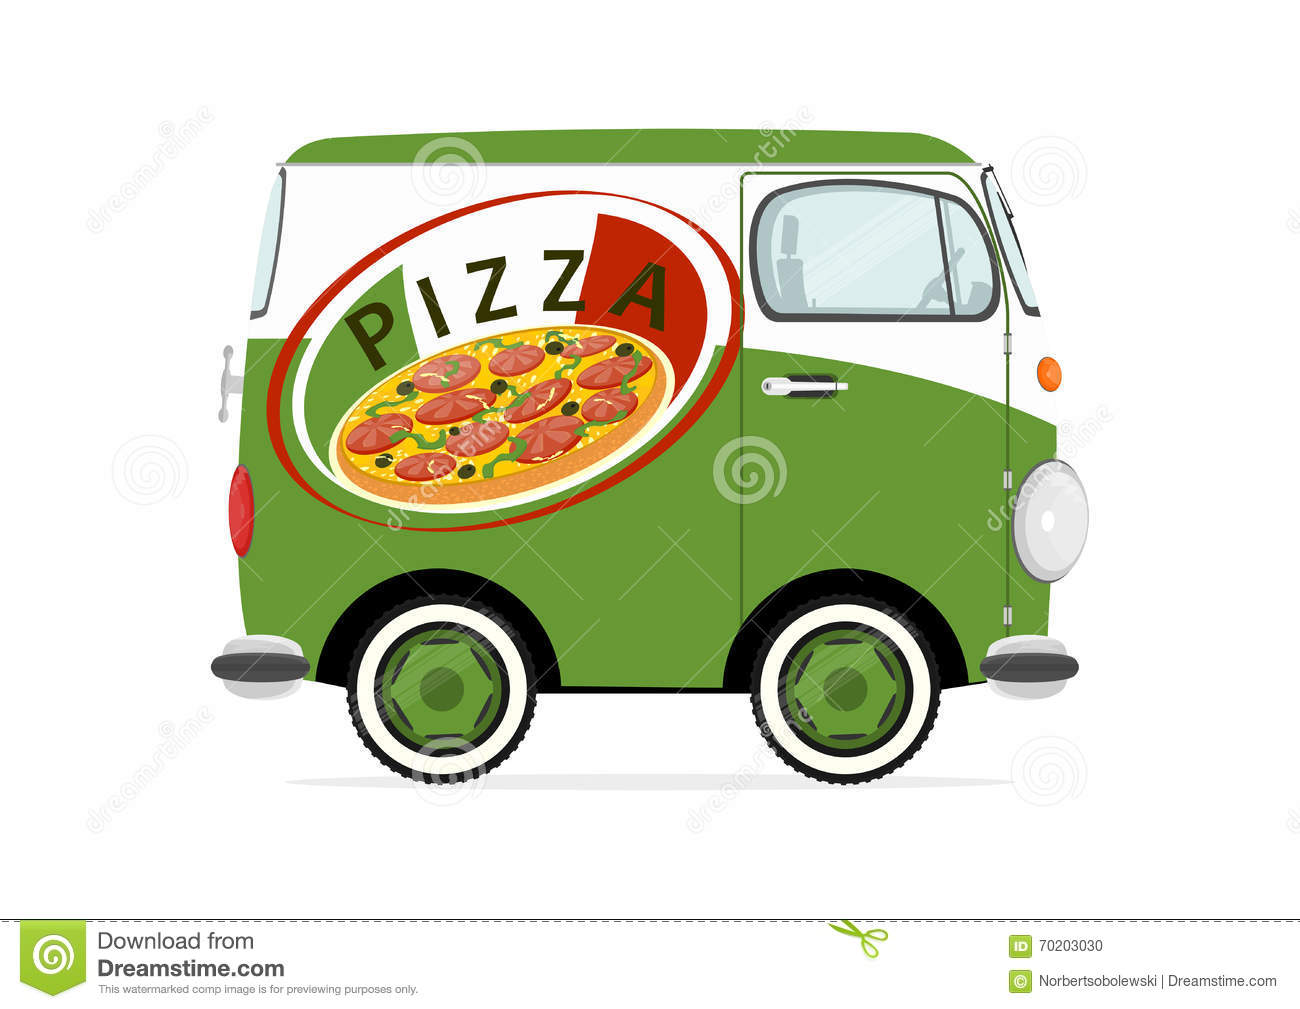 voiture de livraison de pizza illustration de vecteur image 70203030. Black Bedroom Furniture Sets. Home Design Ideas